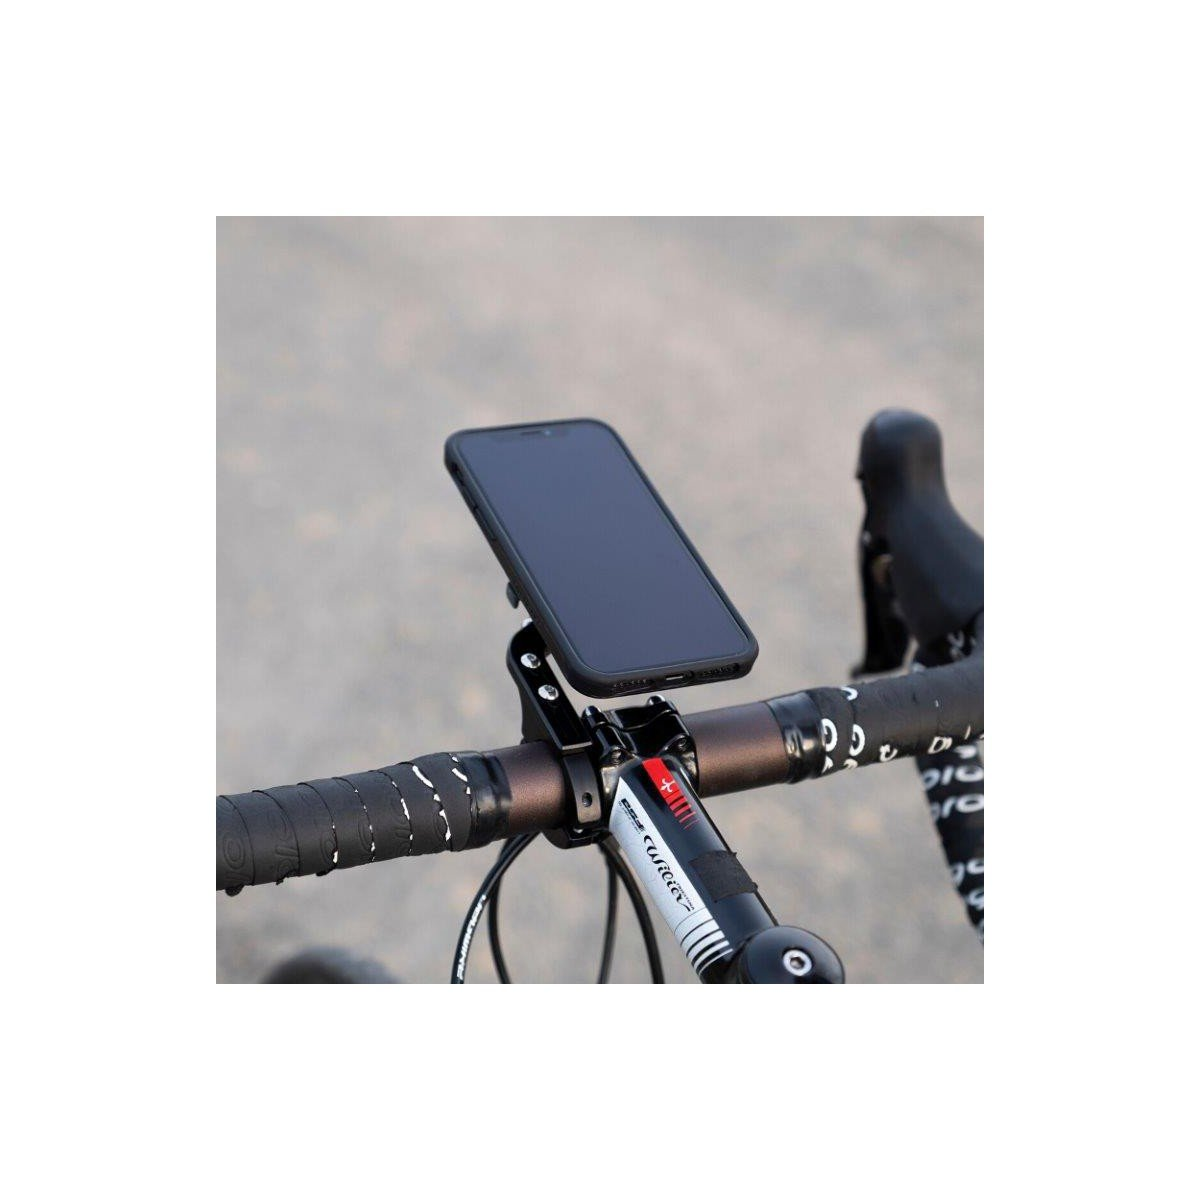 FitClic Neo Bike kit forward for OnePlus 6T - BuyBits Ltd UK